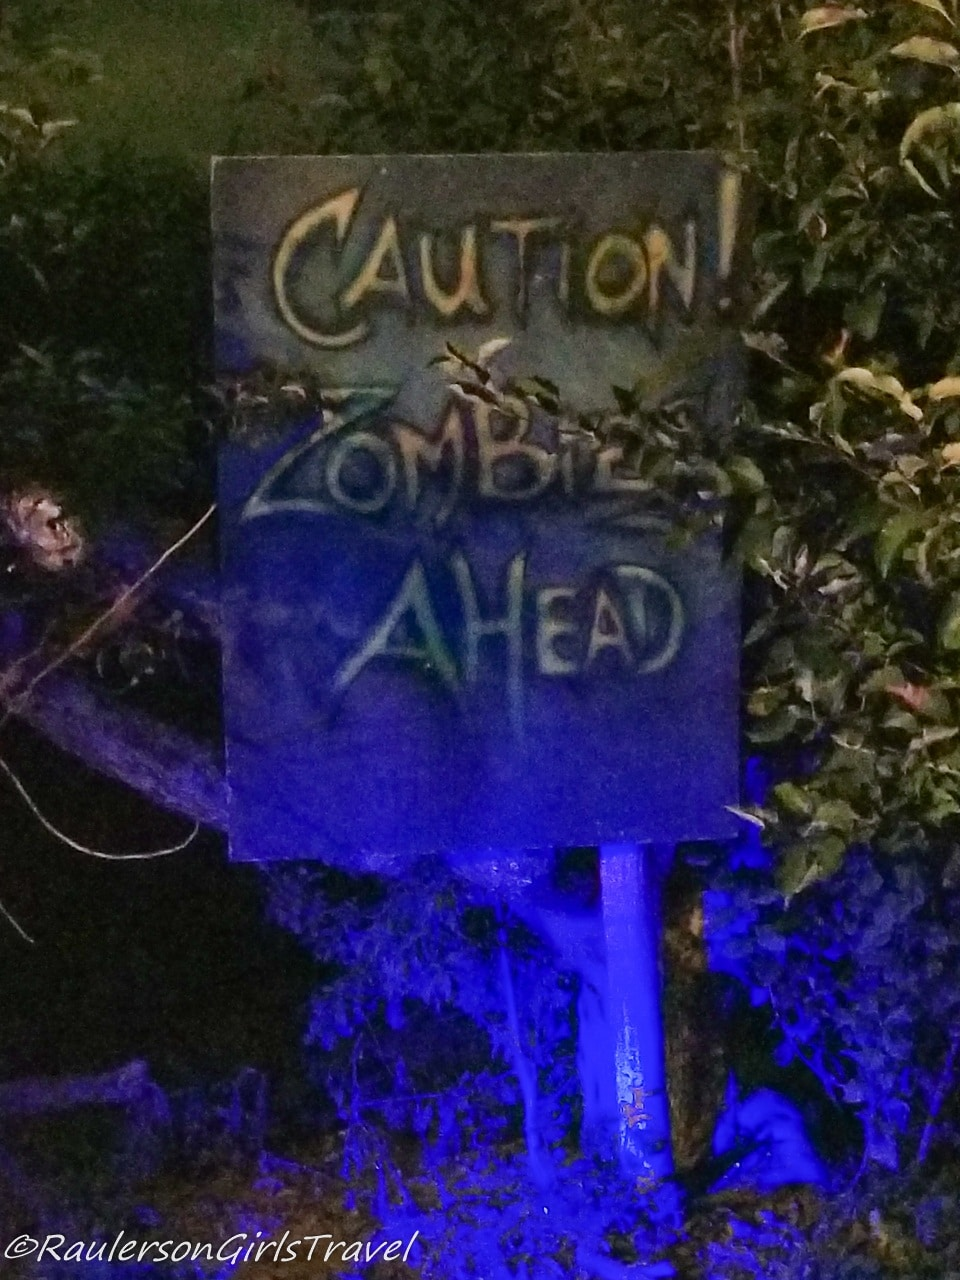 Caution Zombies Ahead Sign at Blake's Big Apple Cider Mill